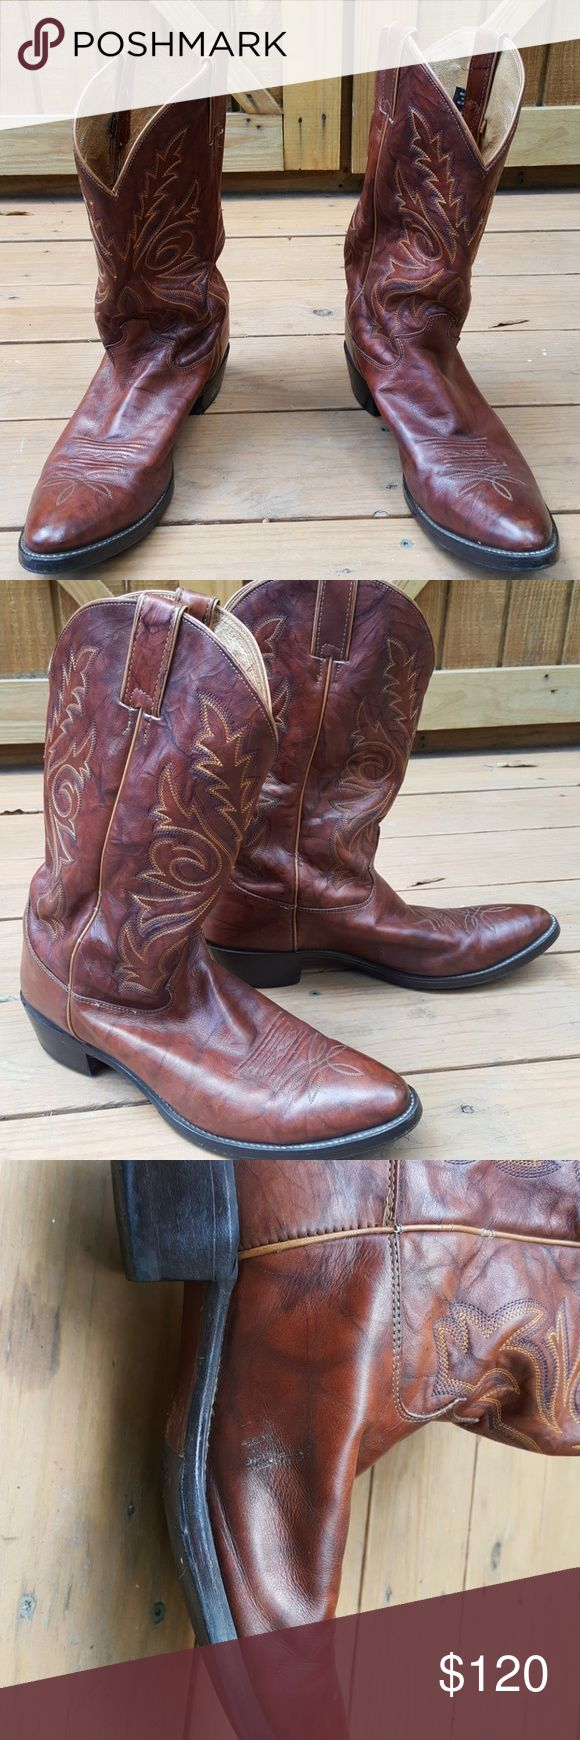 "Justin Chestnut Western Boots Clean pre-owned Justin Cowboys Boots. Brown with tan stitching. Shows a little wear on the heel. Has a scape on inside heel shown in pictures. Measures: 14.5"" tall, 13.5"" long Justin Boots Shoes Boots"